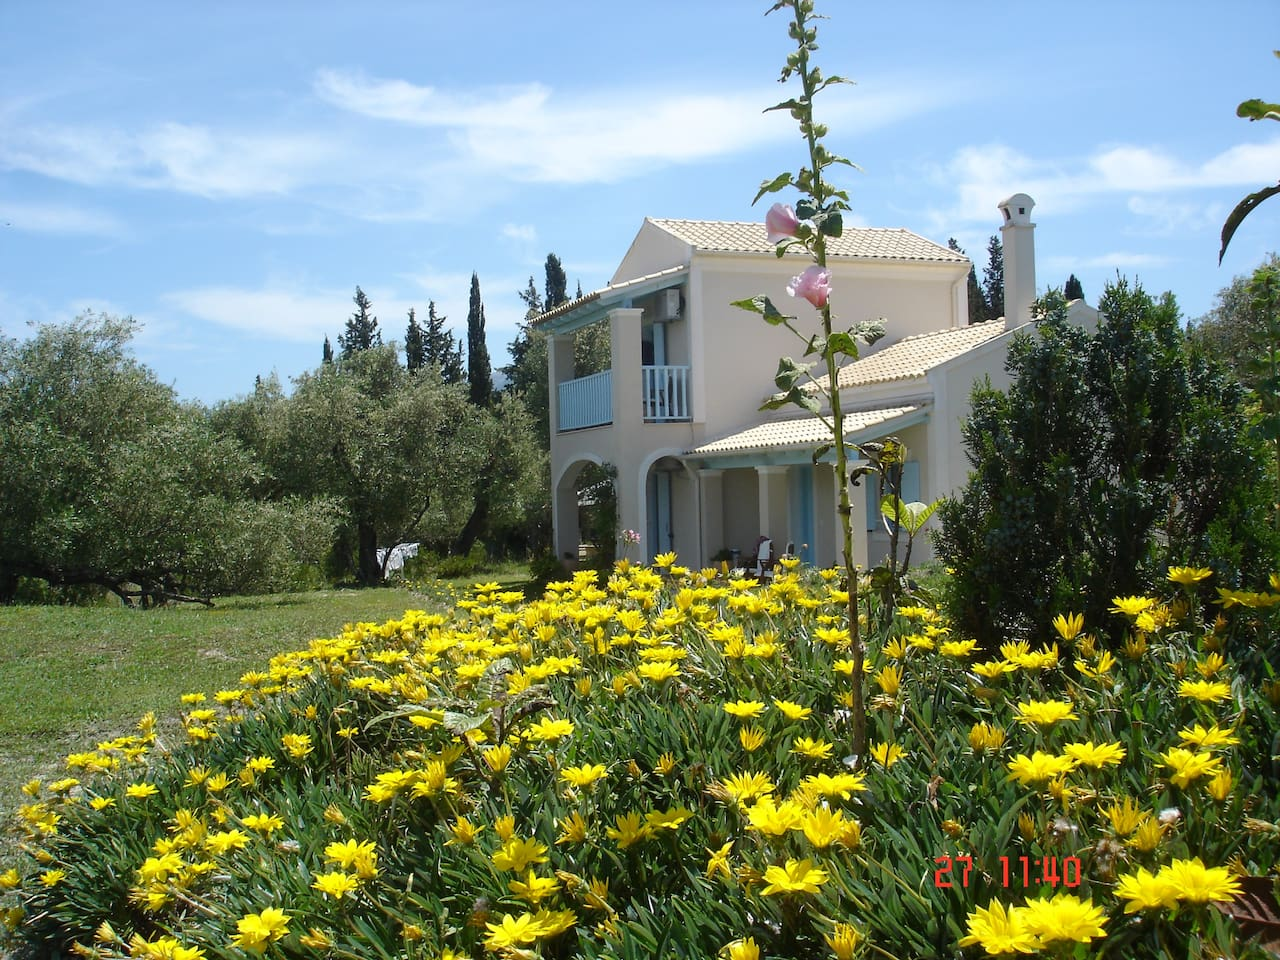 Asfodelos farm house - the frond side